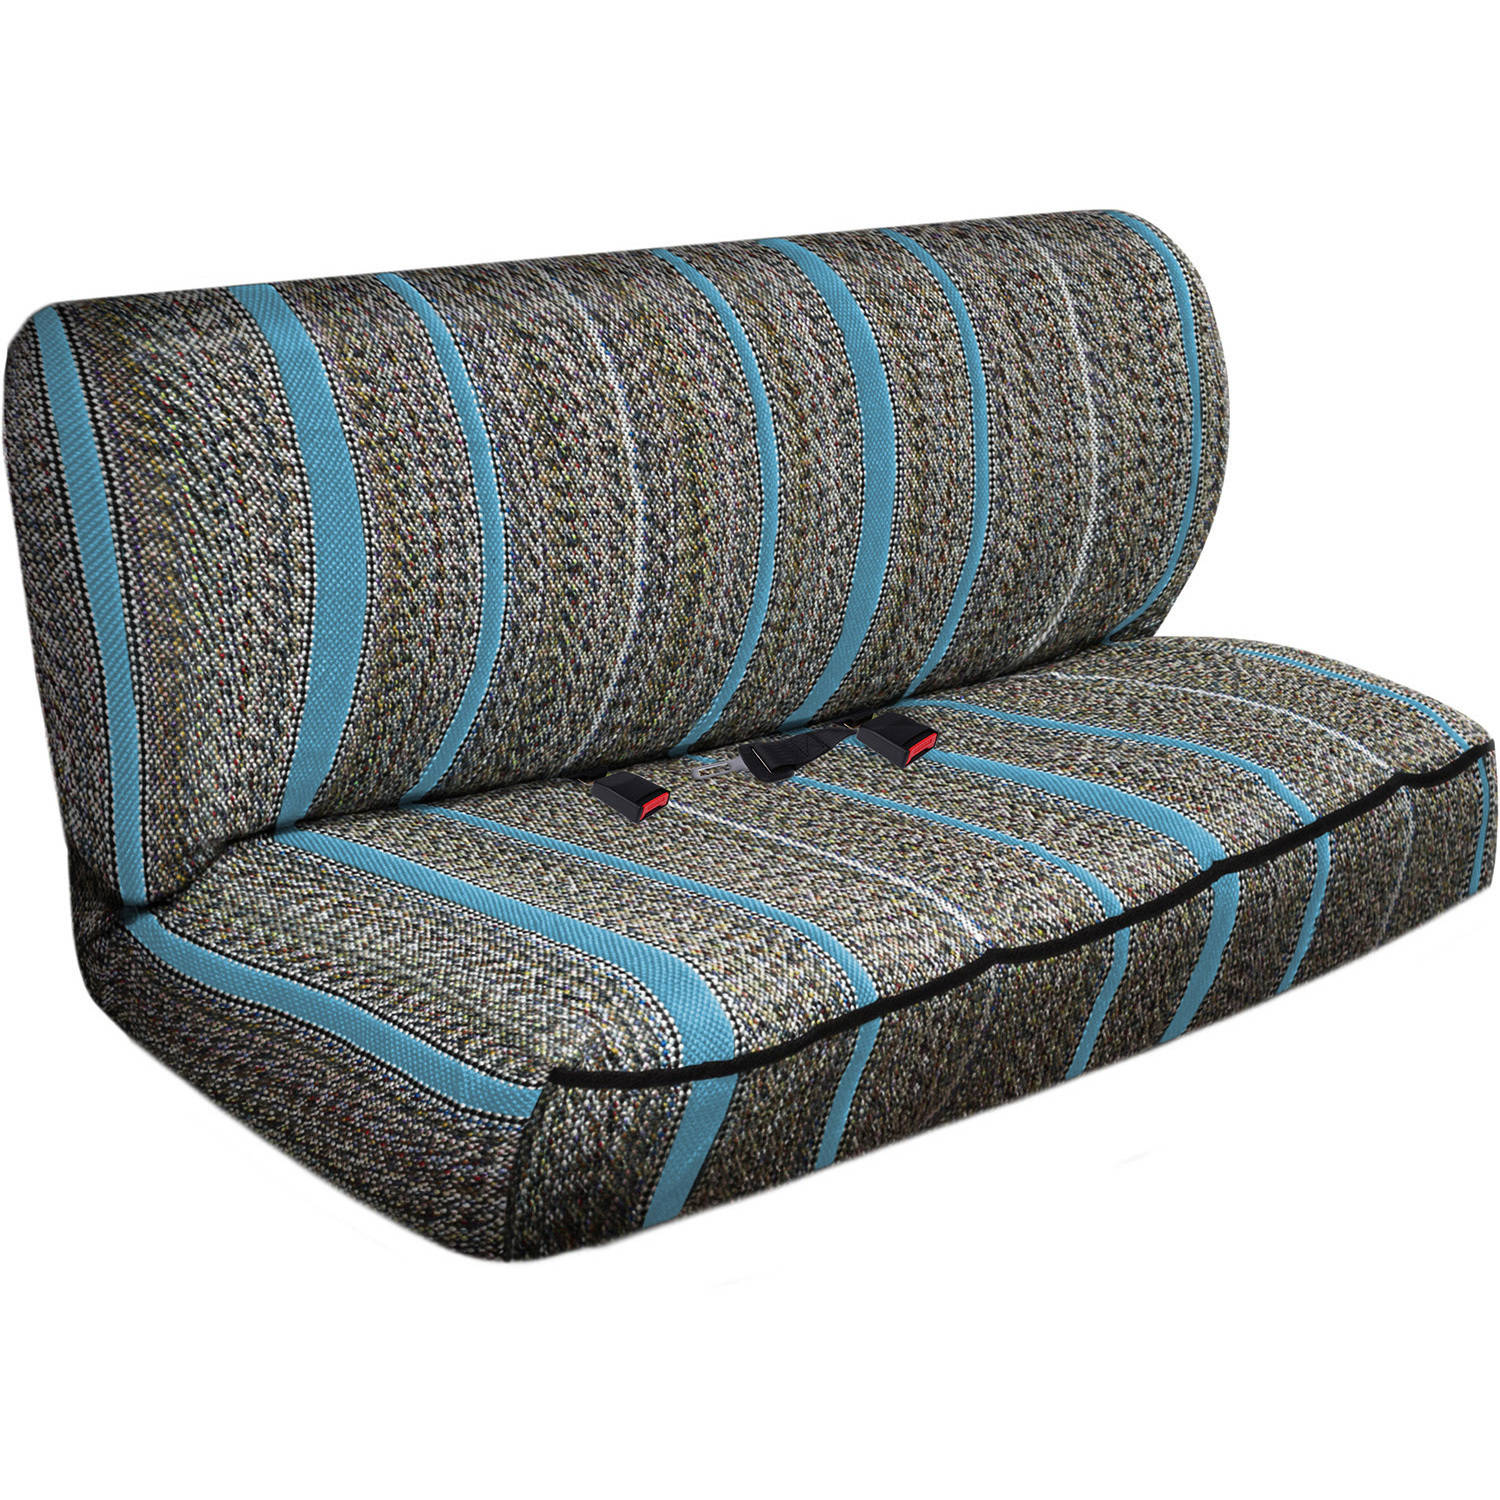 OxGord 2-Piece Full Size Heavy Duty Saddle Blanket Bench Seat Covers, Light Blue